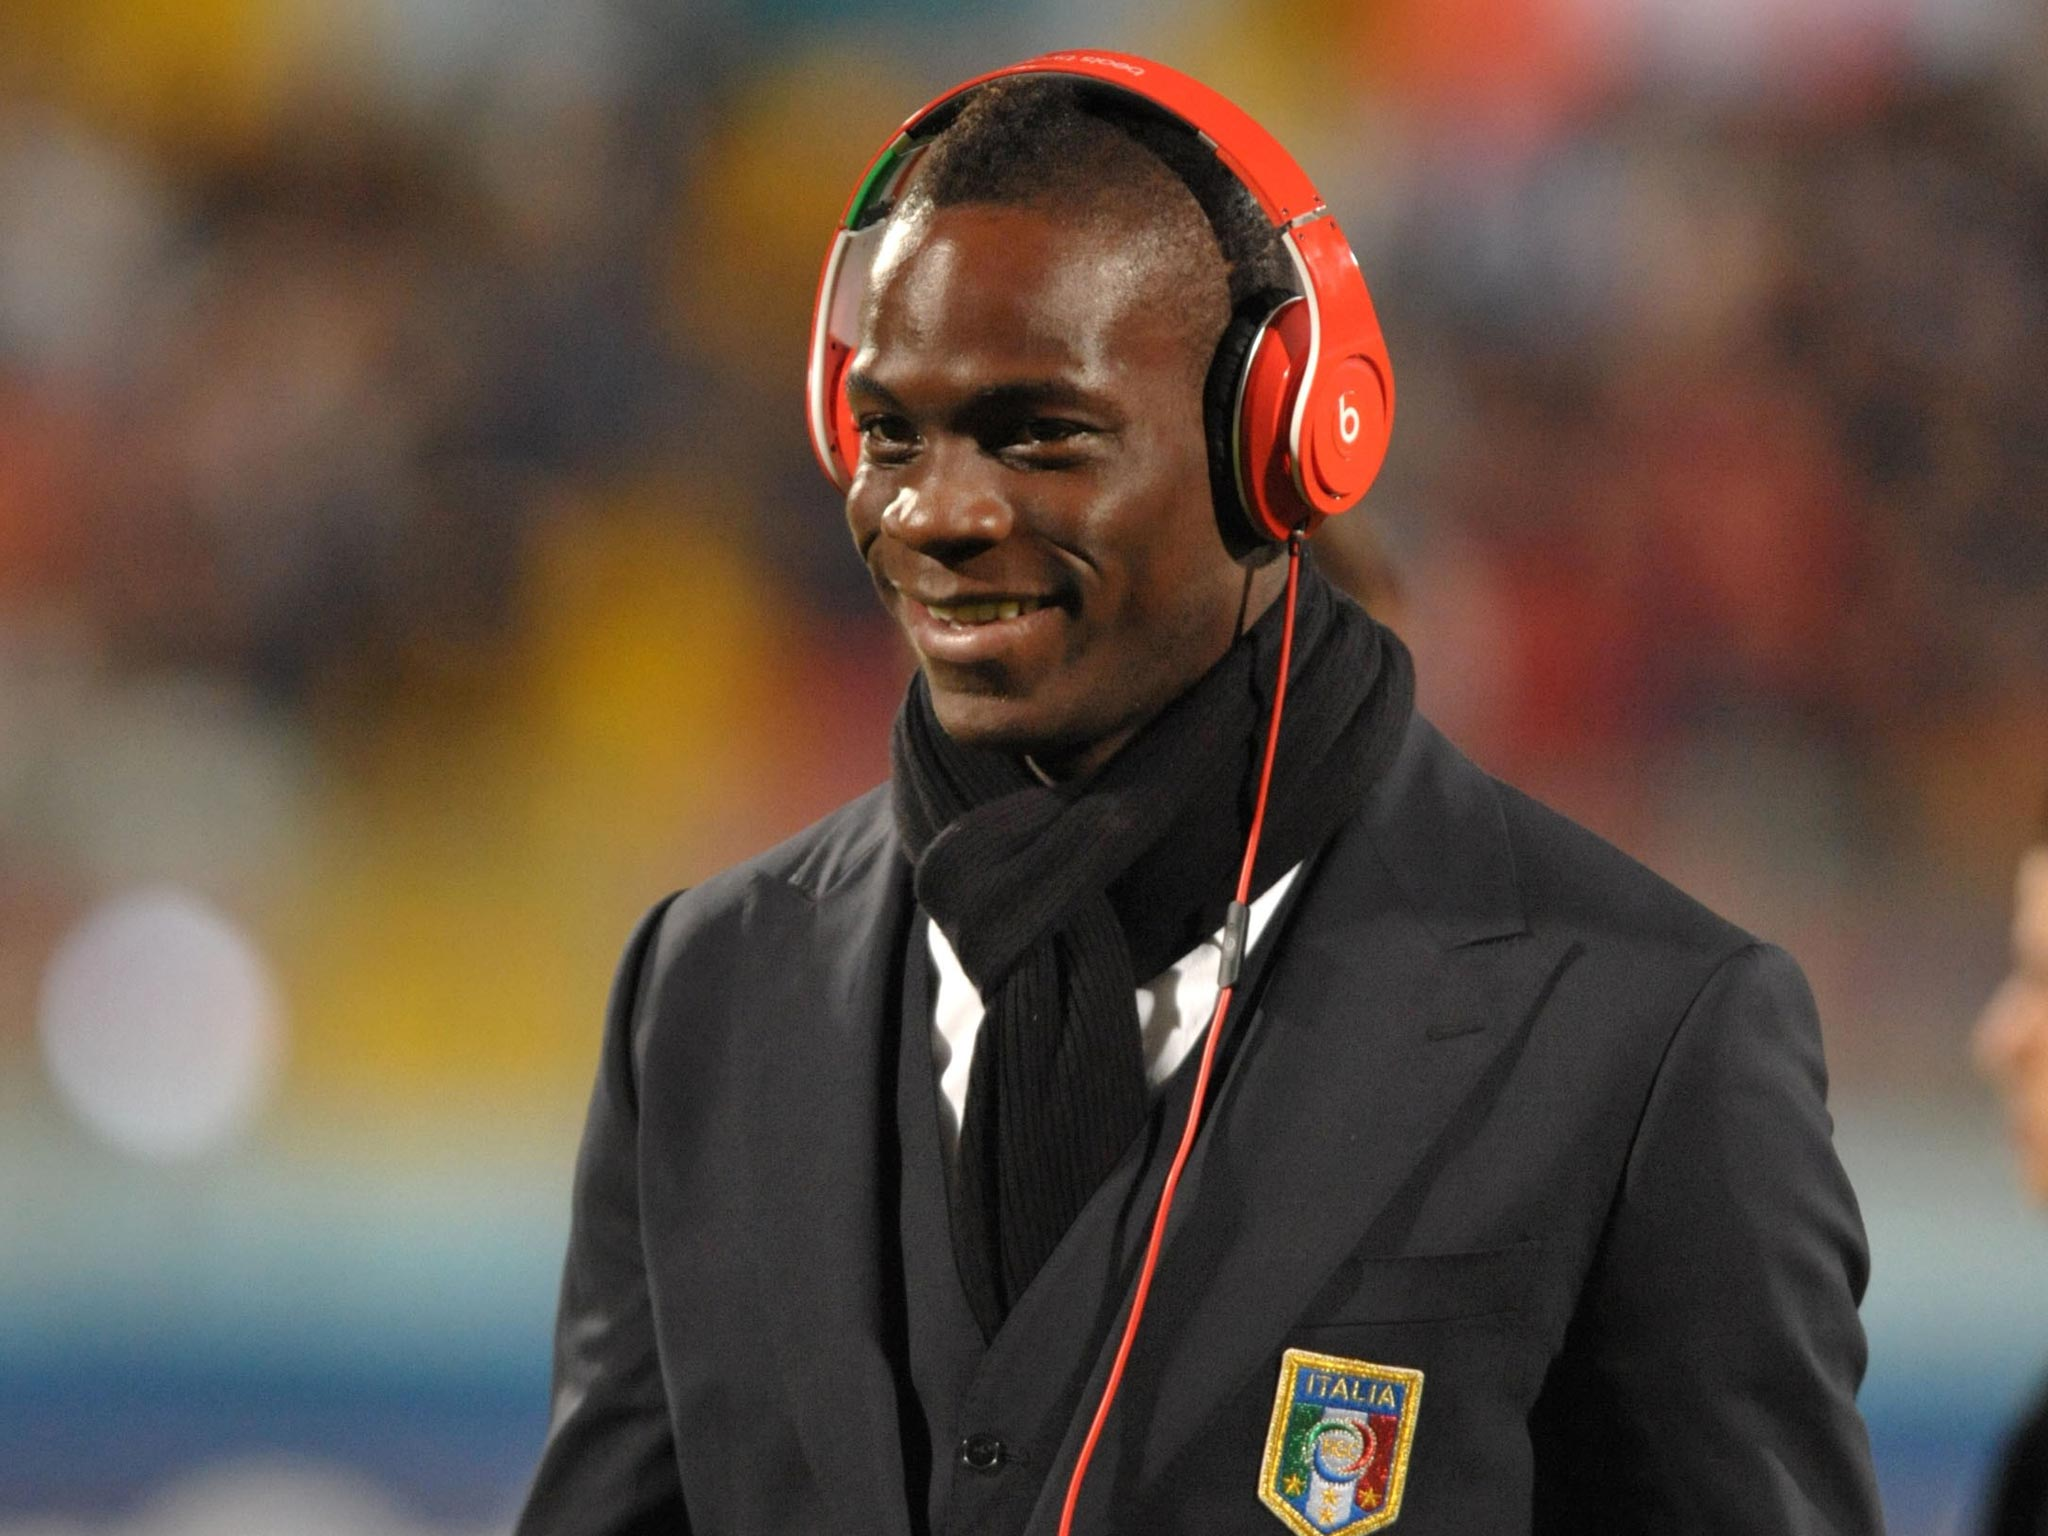 Beat It World Cup Players Defy Fifa Over Banned Beats By Dre Headphones The Independent